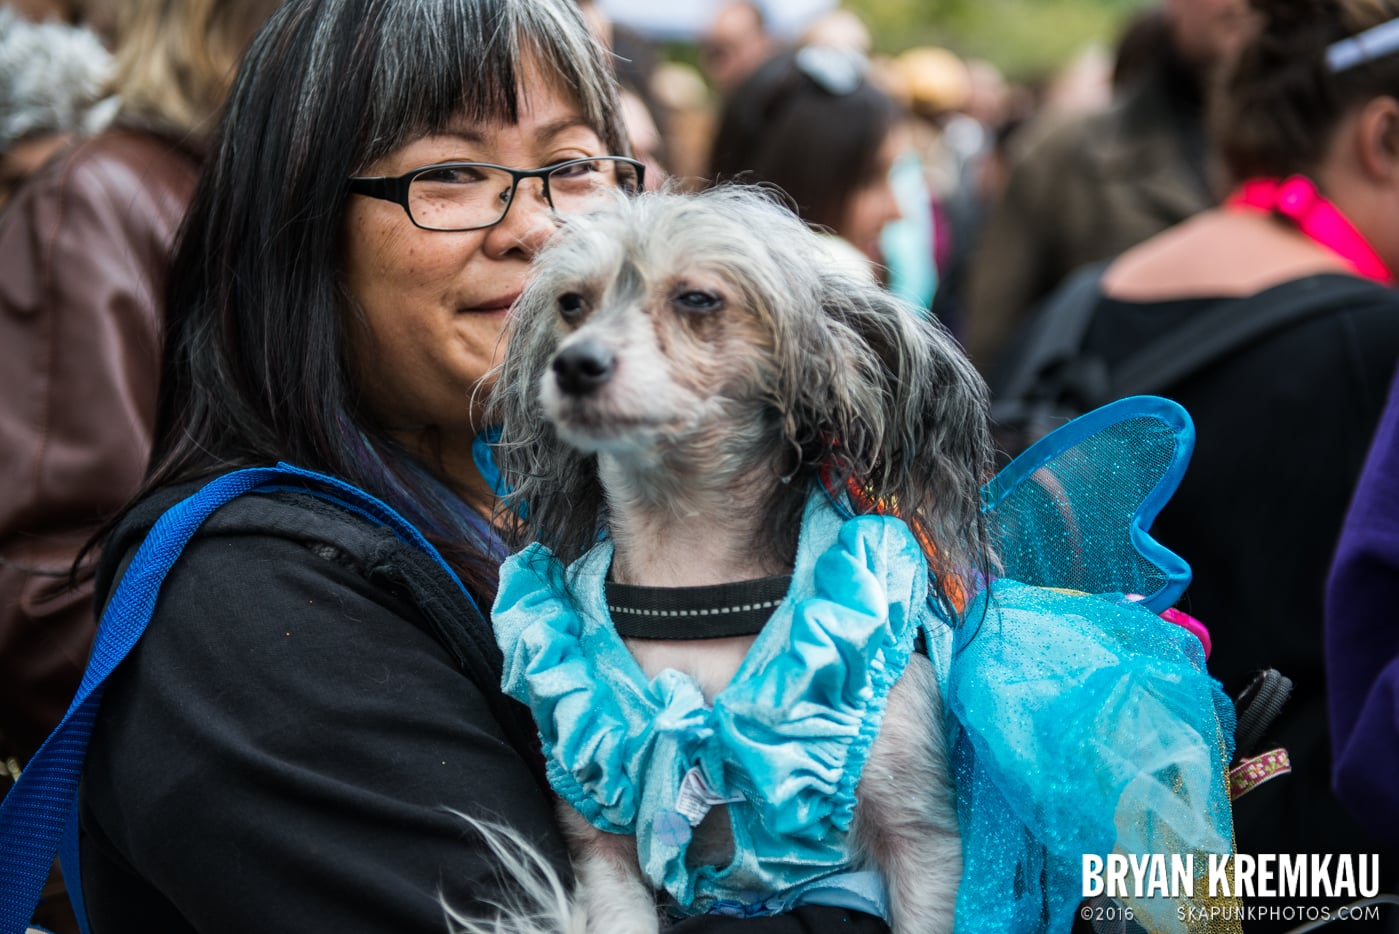 Tompkins Square Halloween Dog Parade 2015 @ Tompkins Square Park, NYC – 10.24.15 (10)